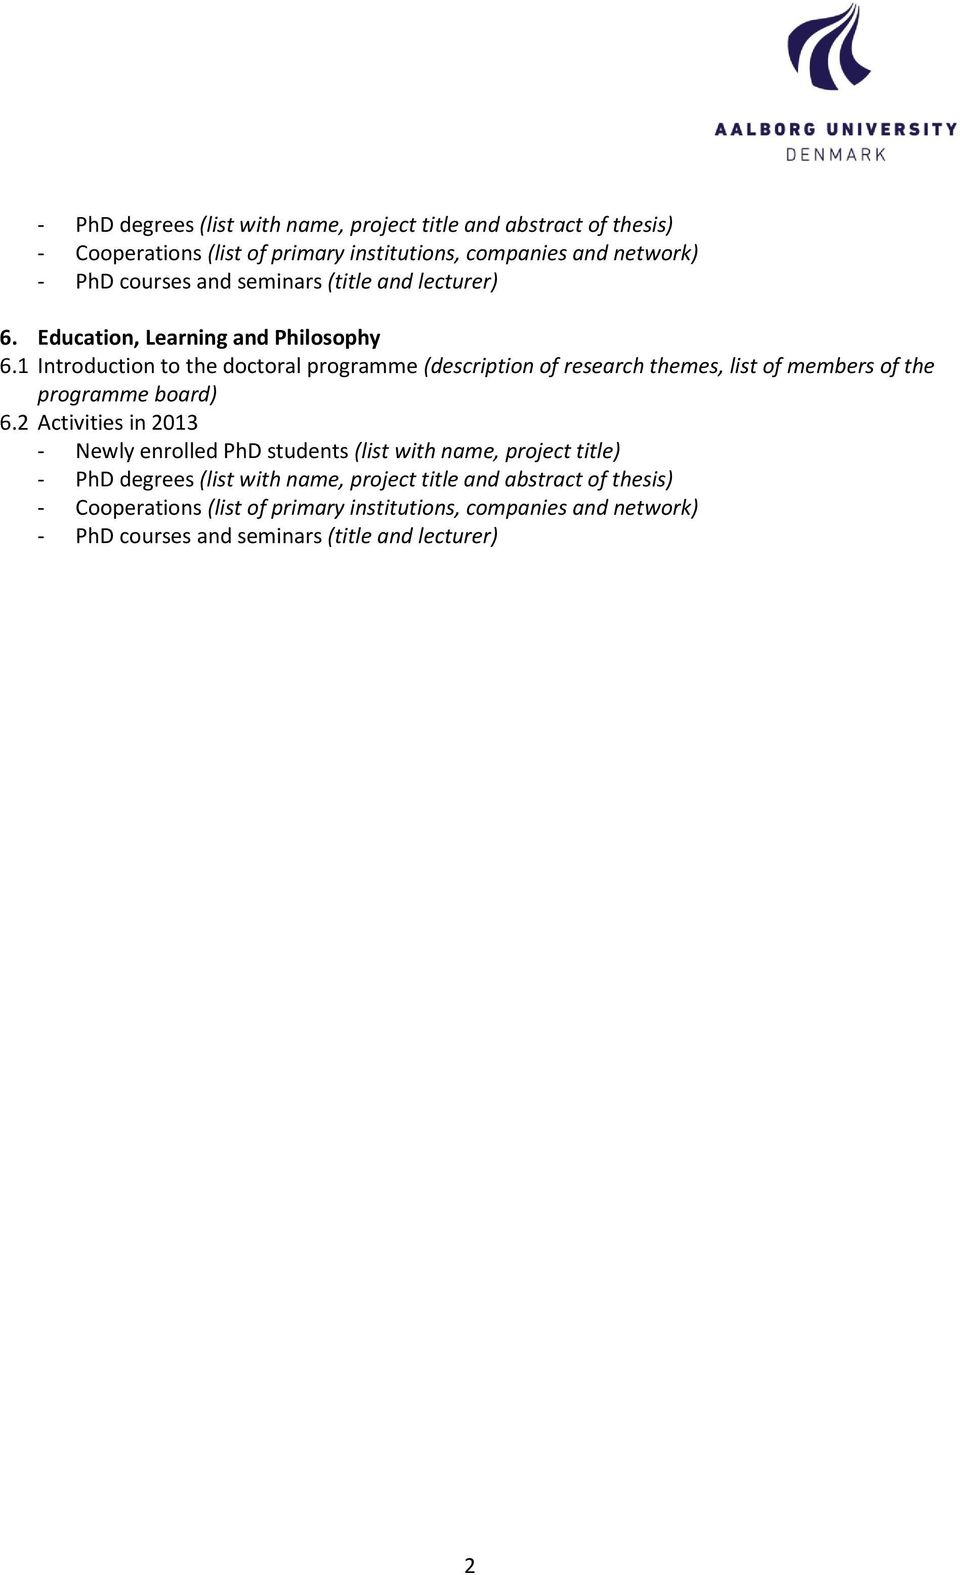 1 Introduction to the doctoral programme (description of research themes, list of members of the programme board) 6.